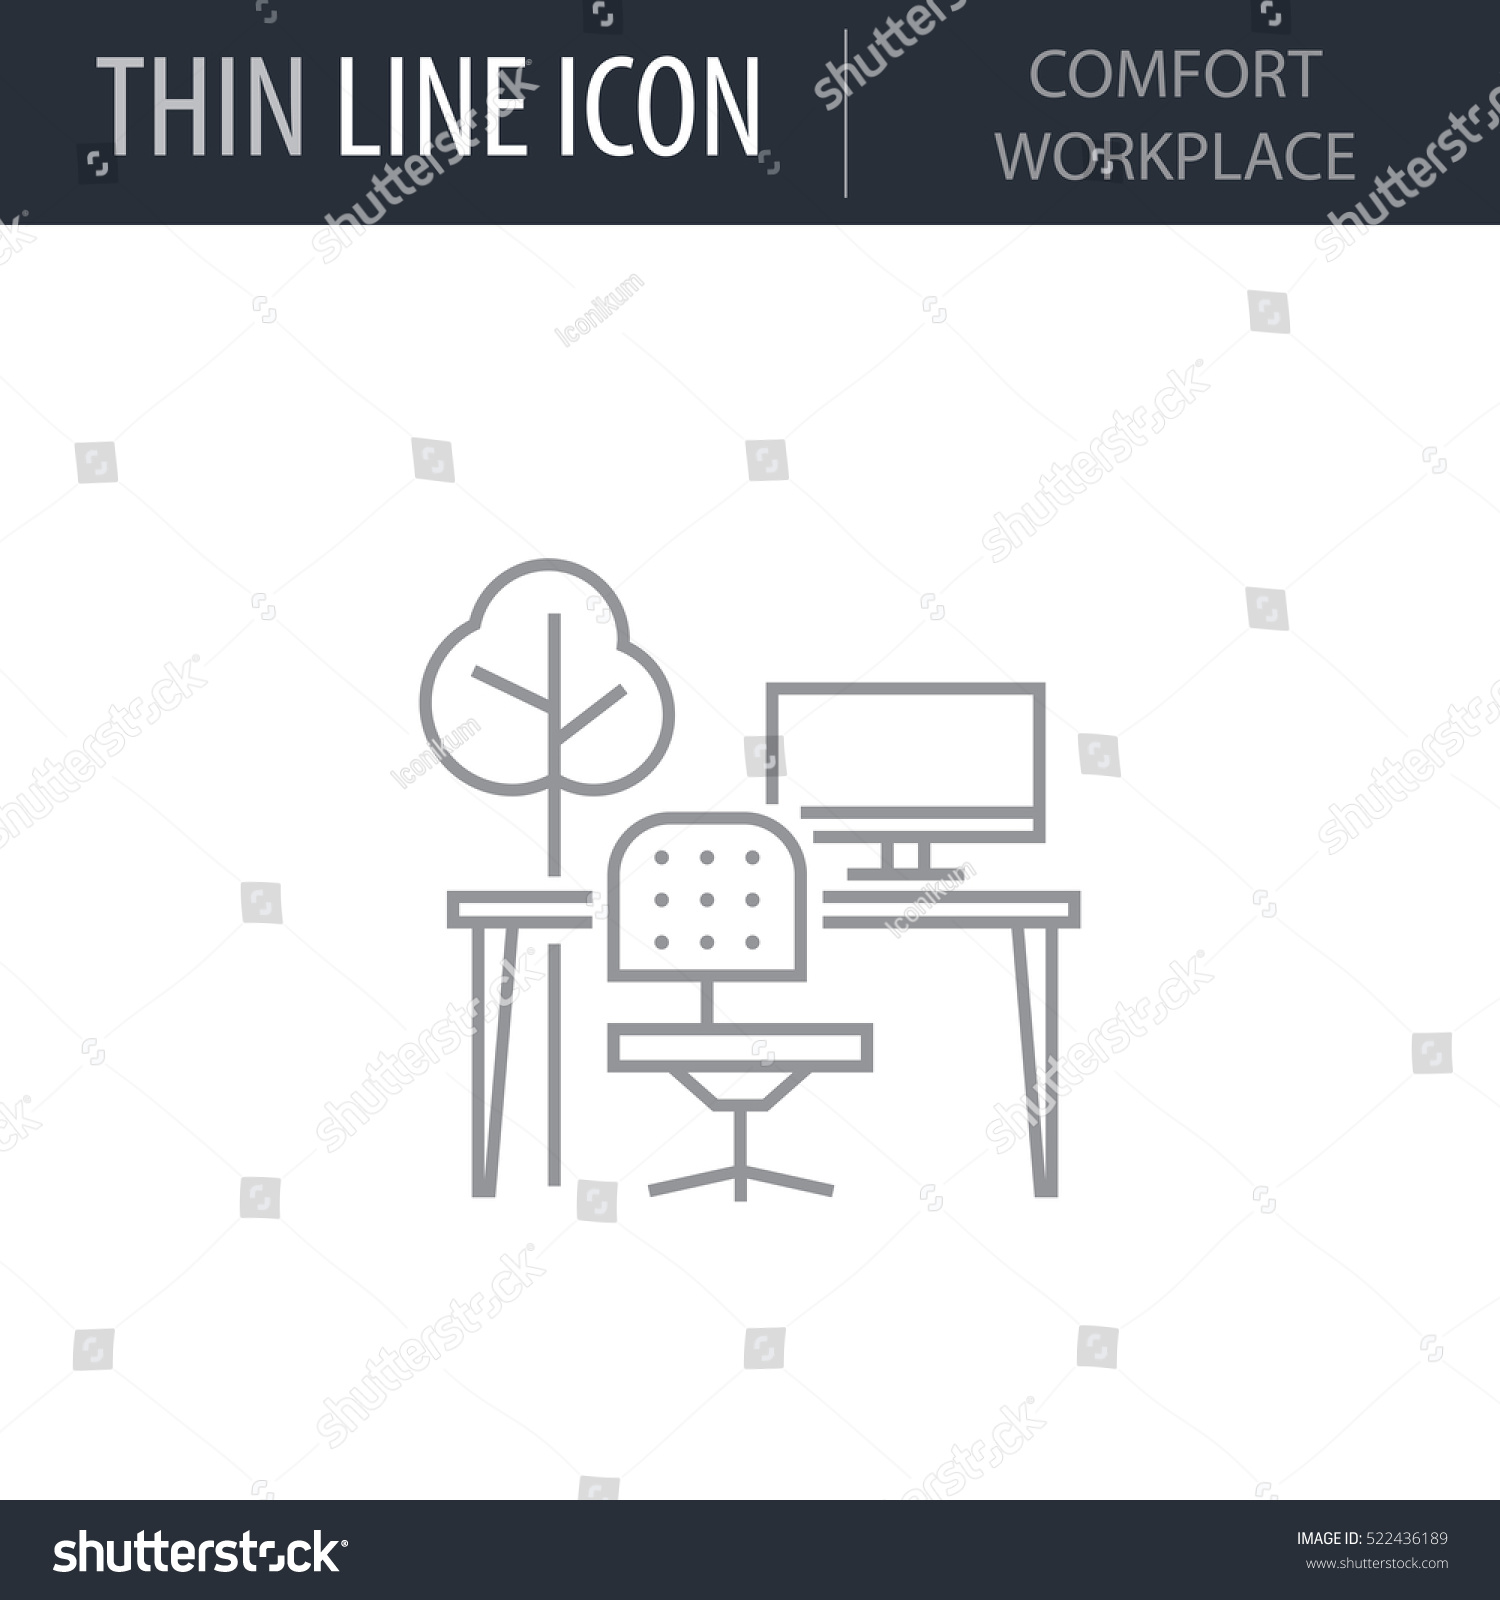 Symbol comfort workplace thin line icon stock vector 522436189 symbol of comfort workplace thin line icon of productivity and concentration stroke pictogram graphic biocorpaavc